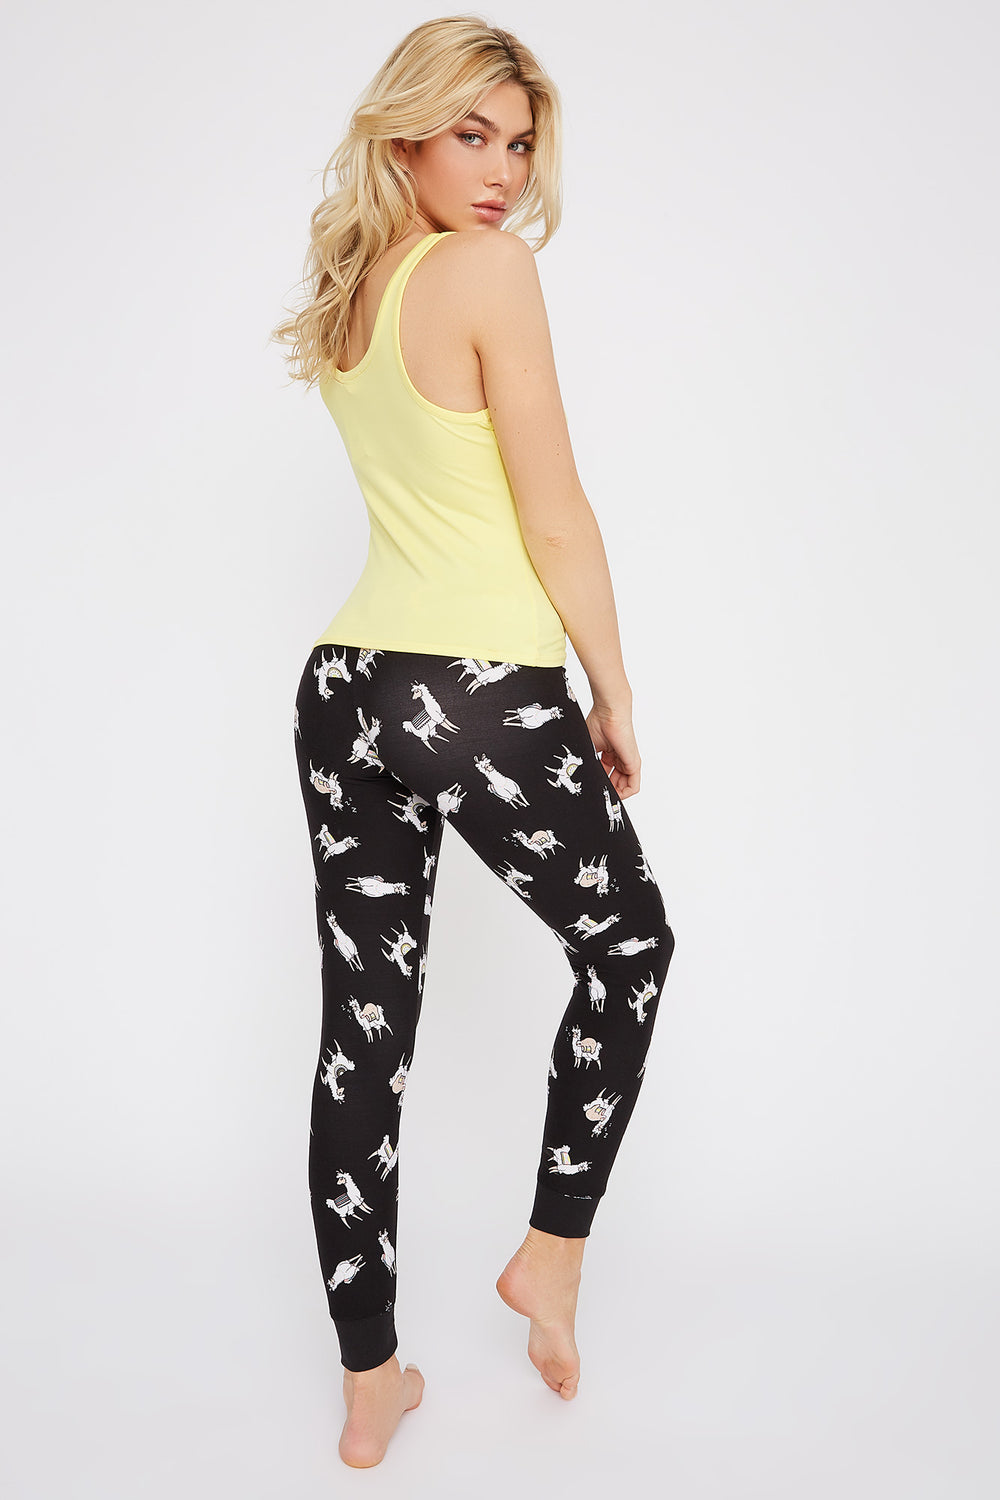 Soft Graphic Pajama Tank and Jogger Set With Scrunchie Yellow